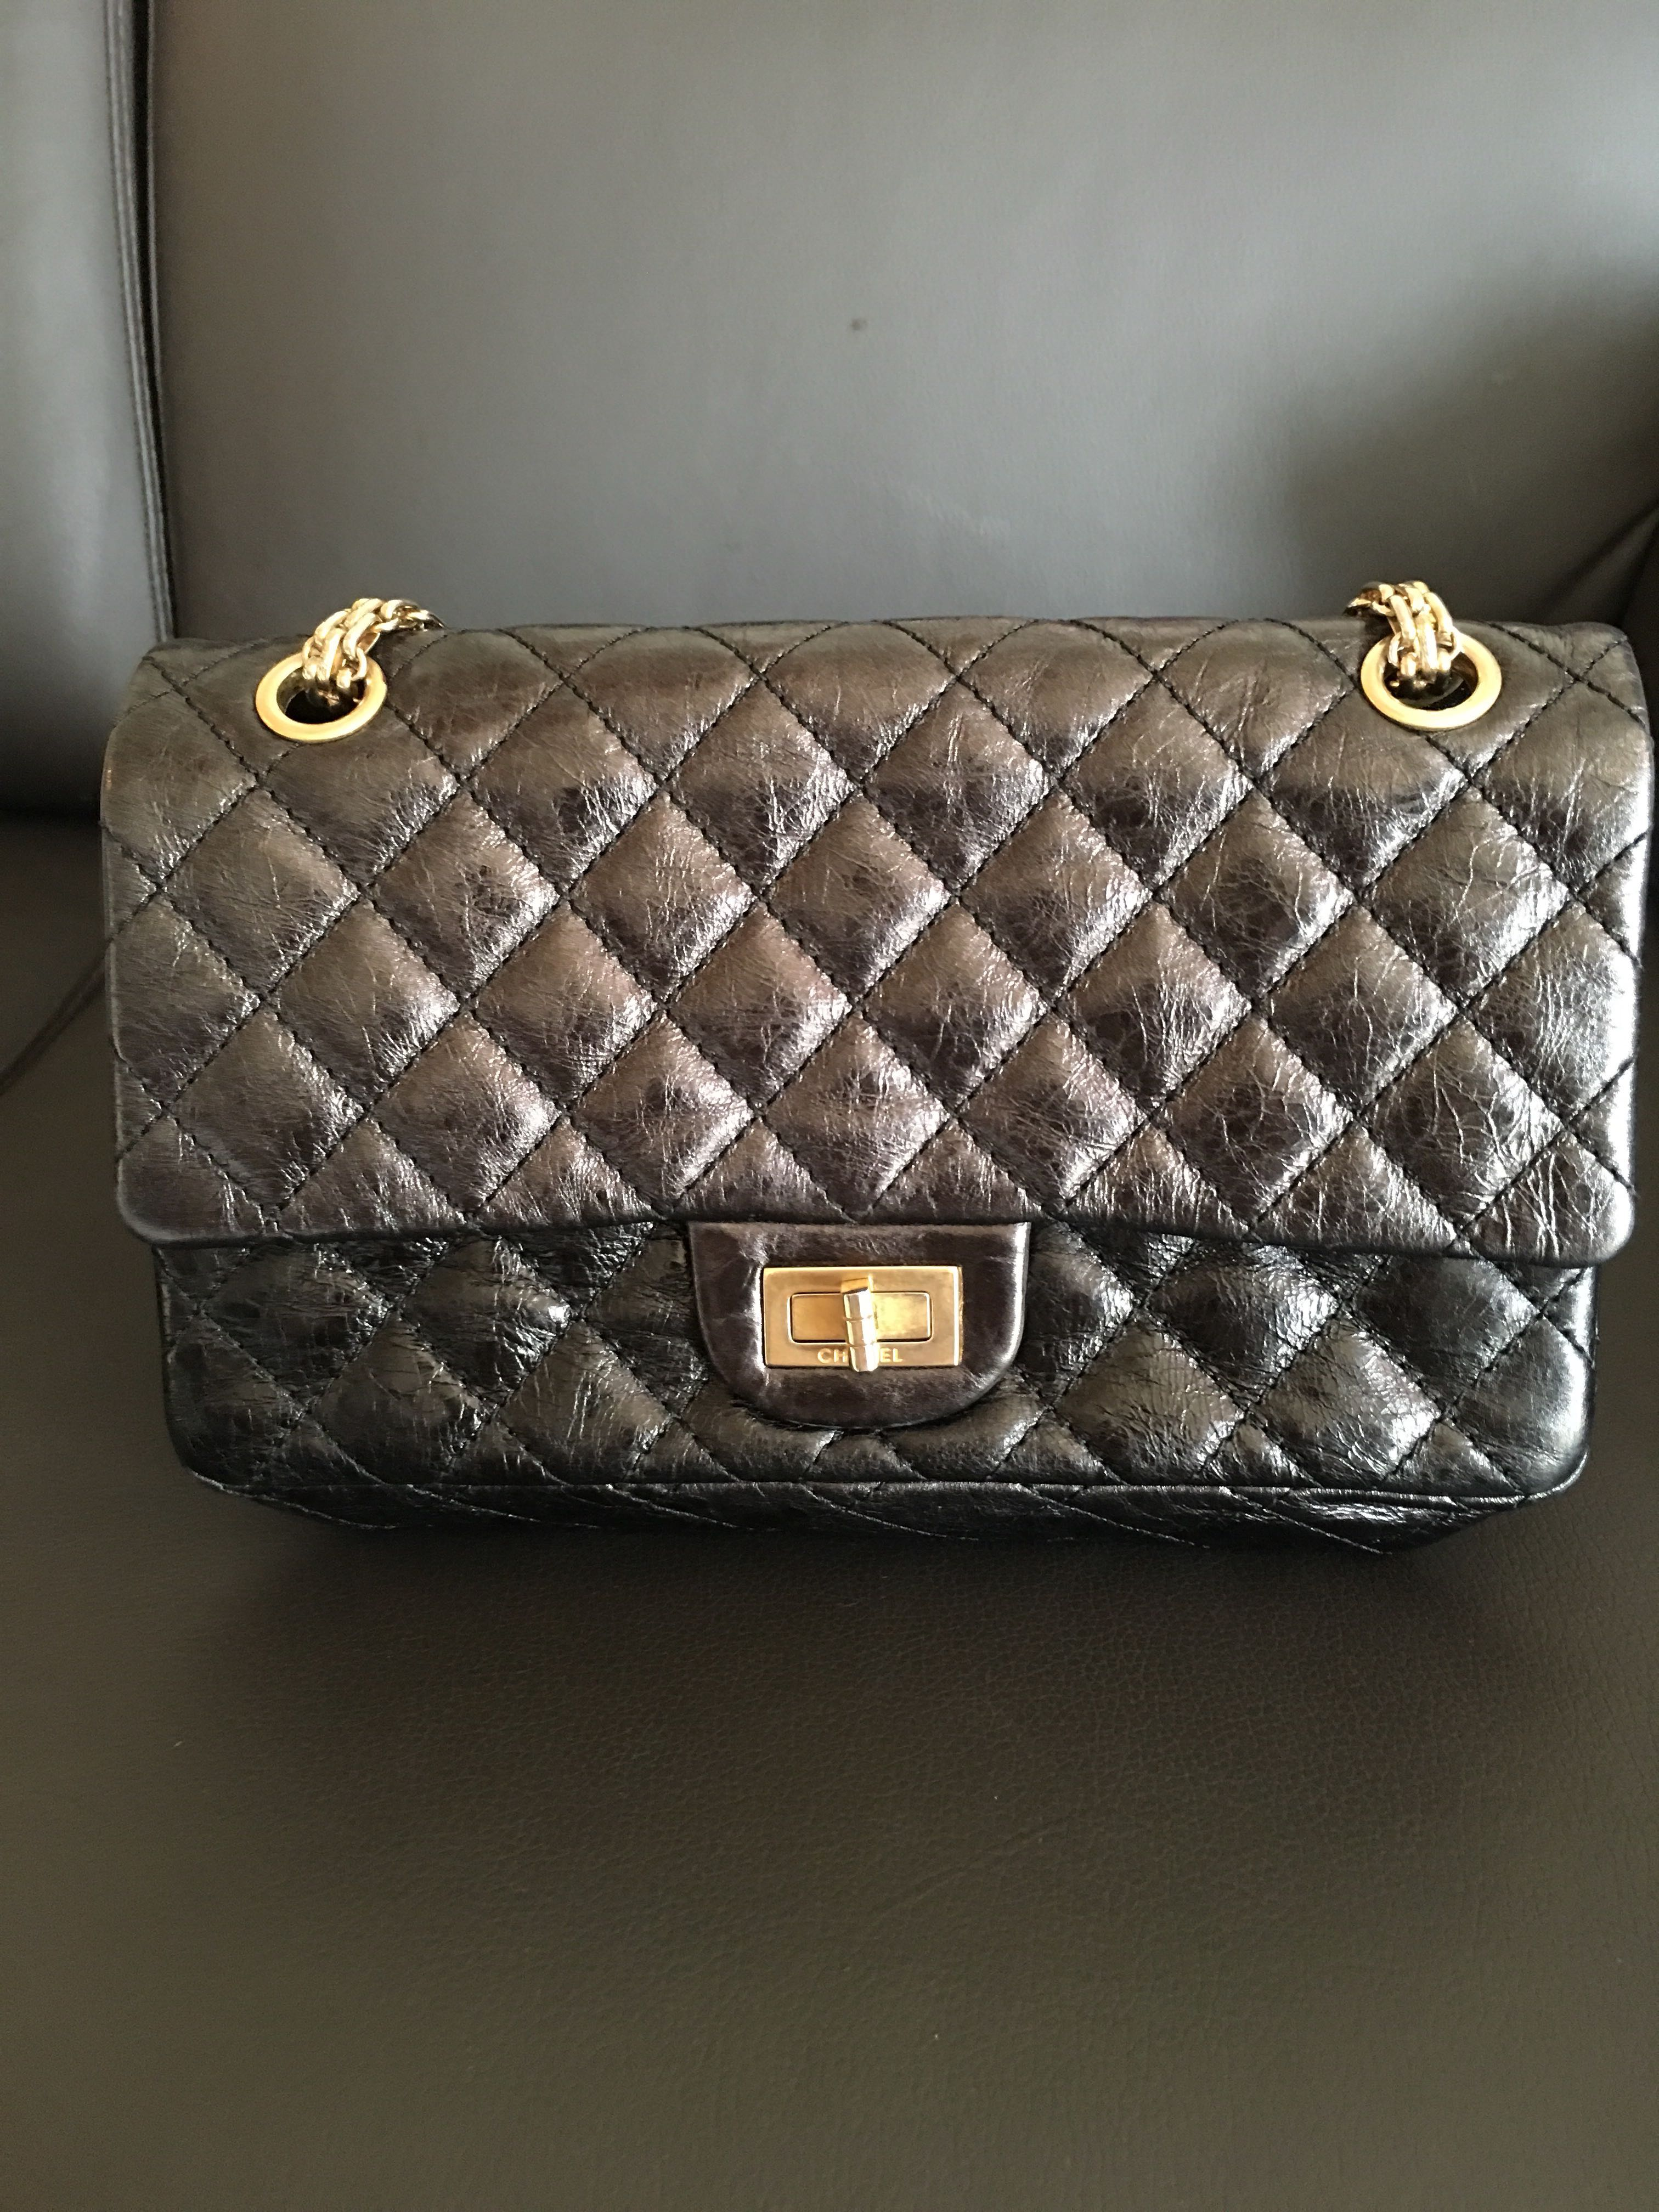 82ef5f08d220 Chanel 2.55 Reissue Small Flap Bag, Women's Fashion, Bags & Wallets ...